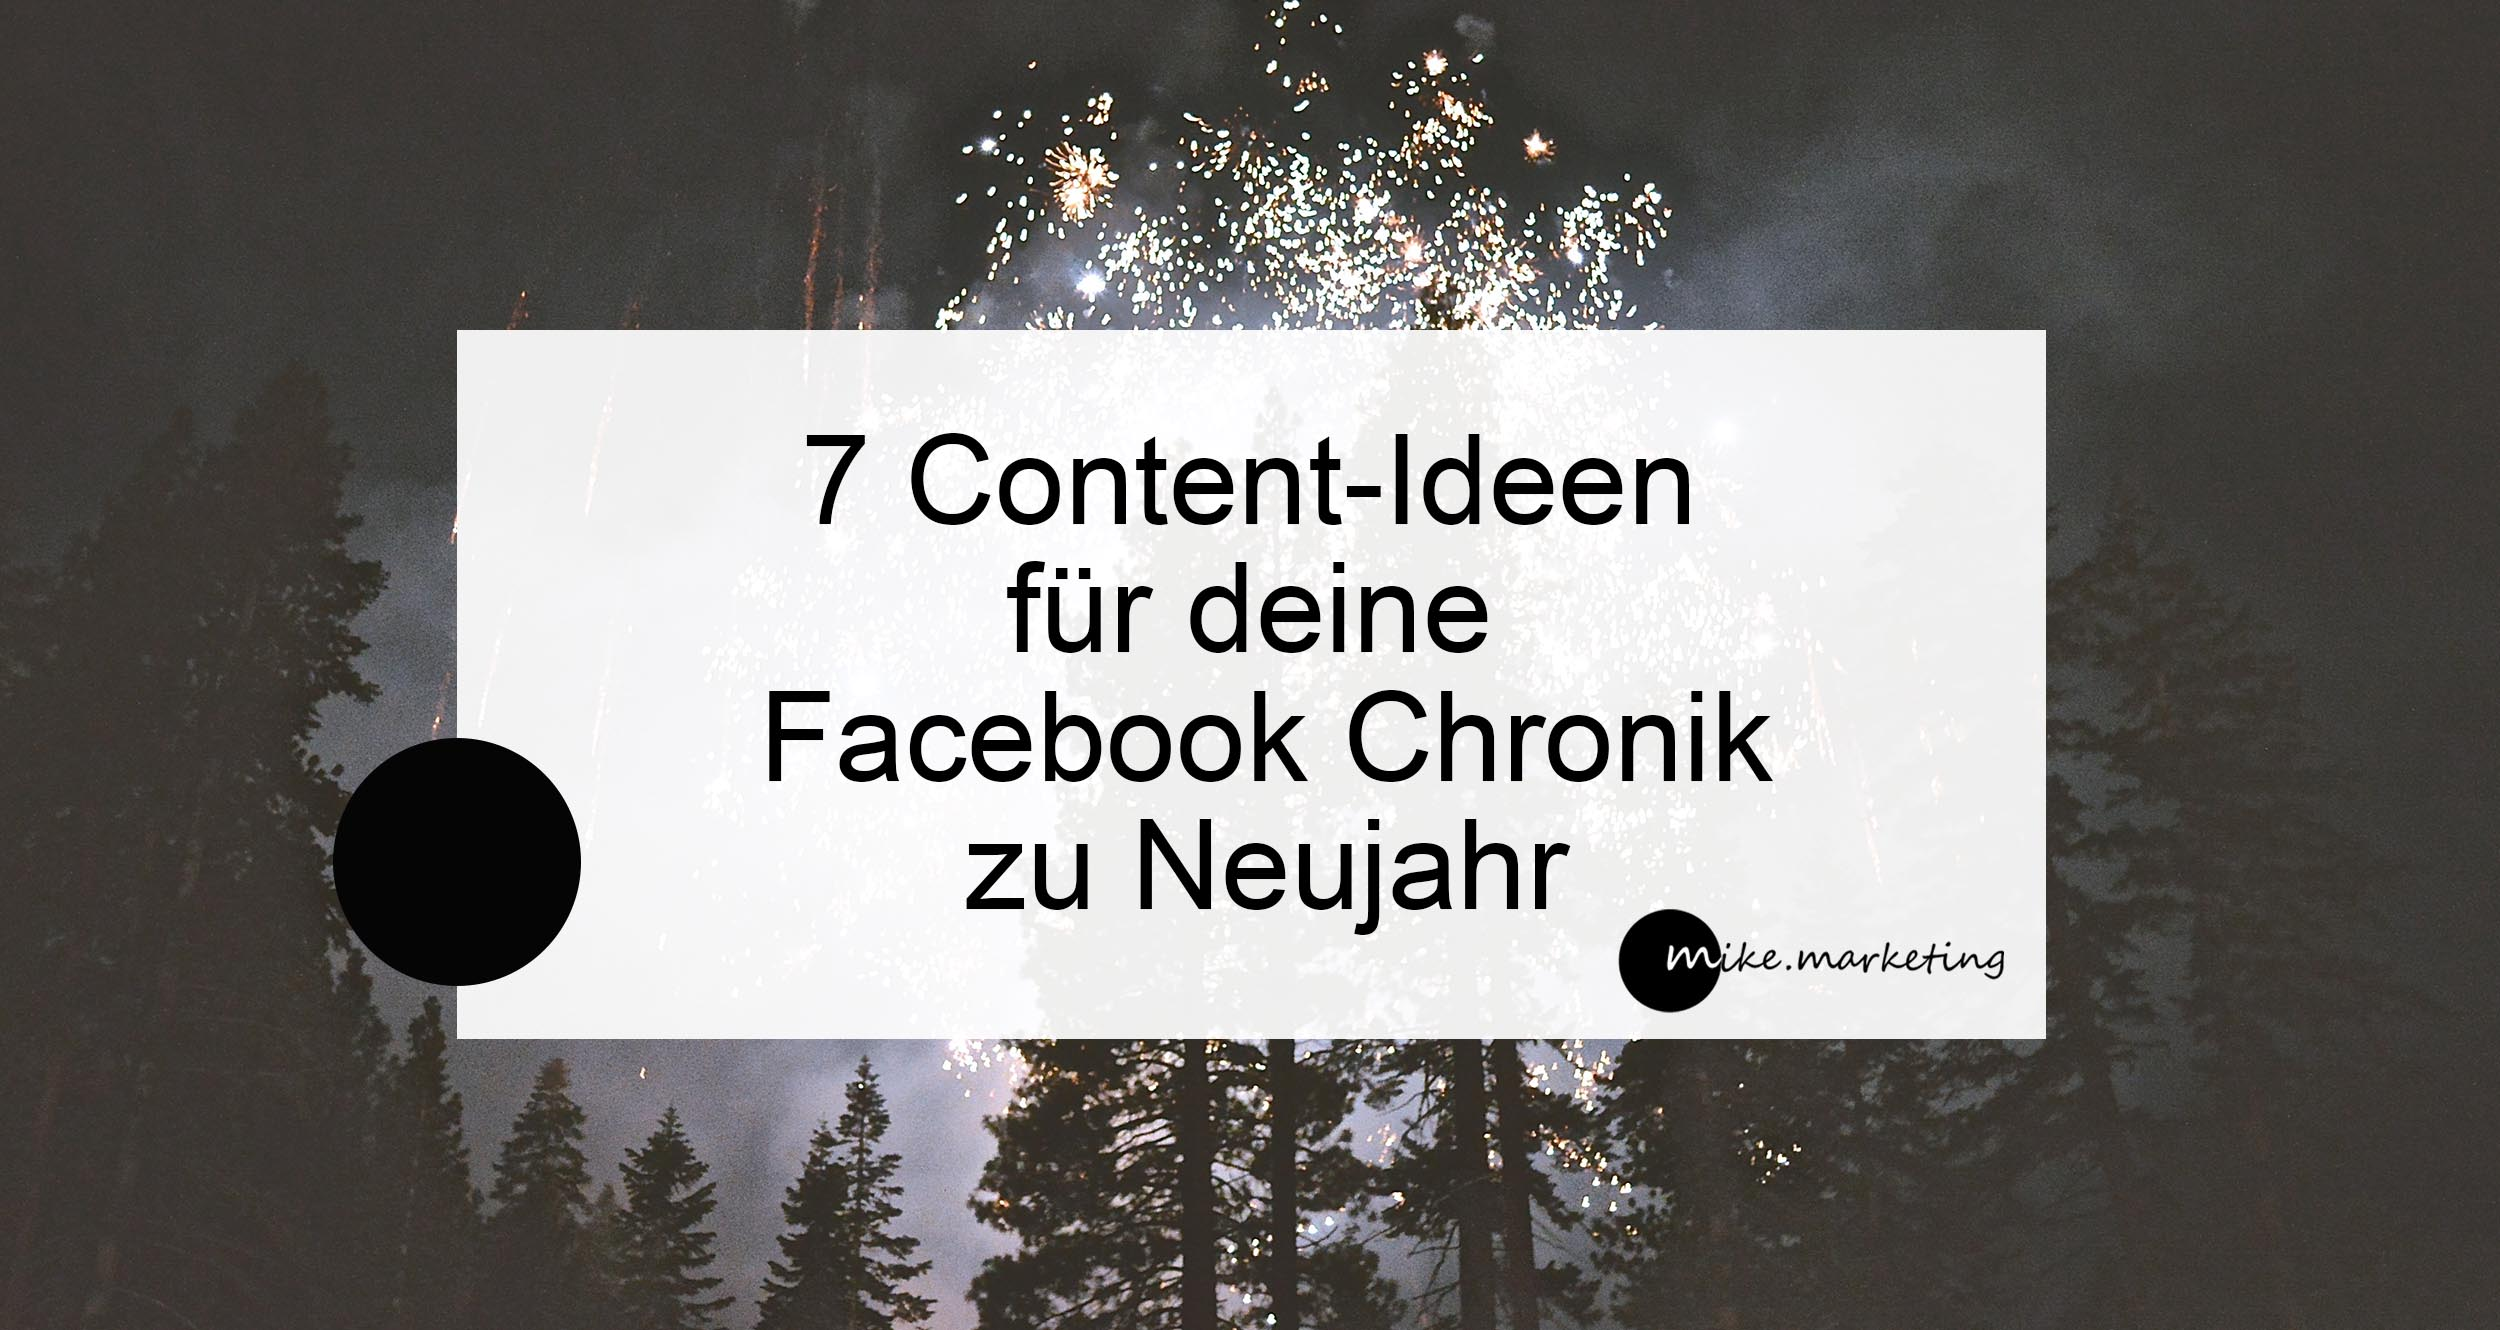 Facebook Chronik_Tipps Neujahr mikemarketing